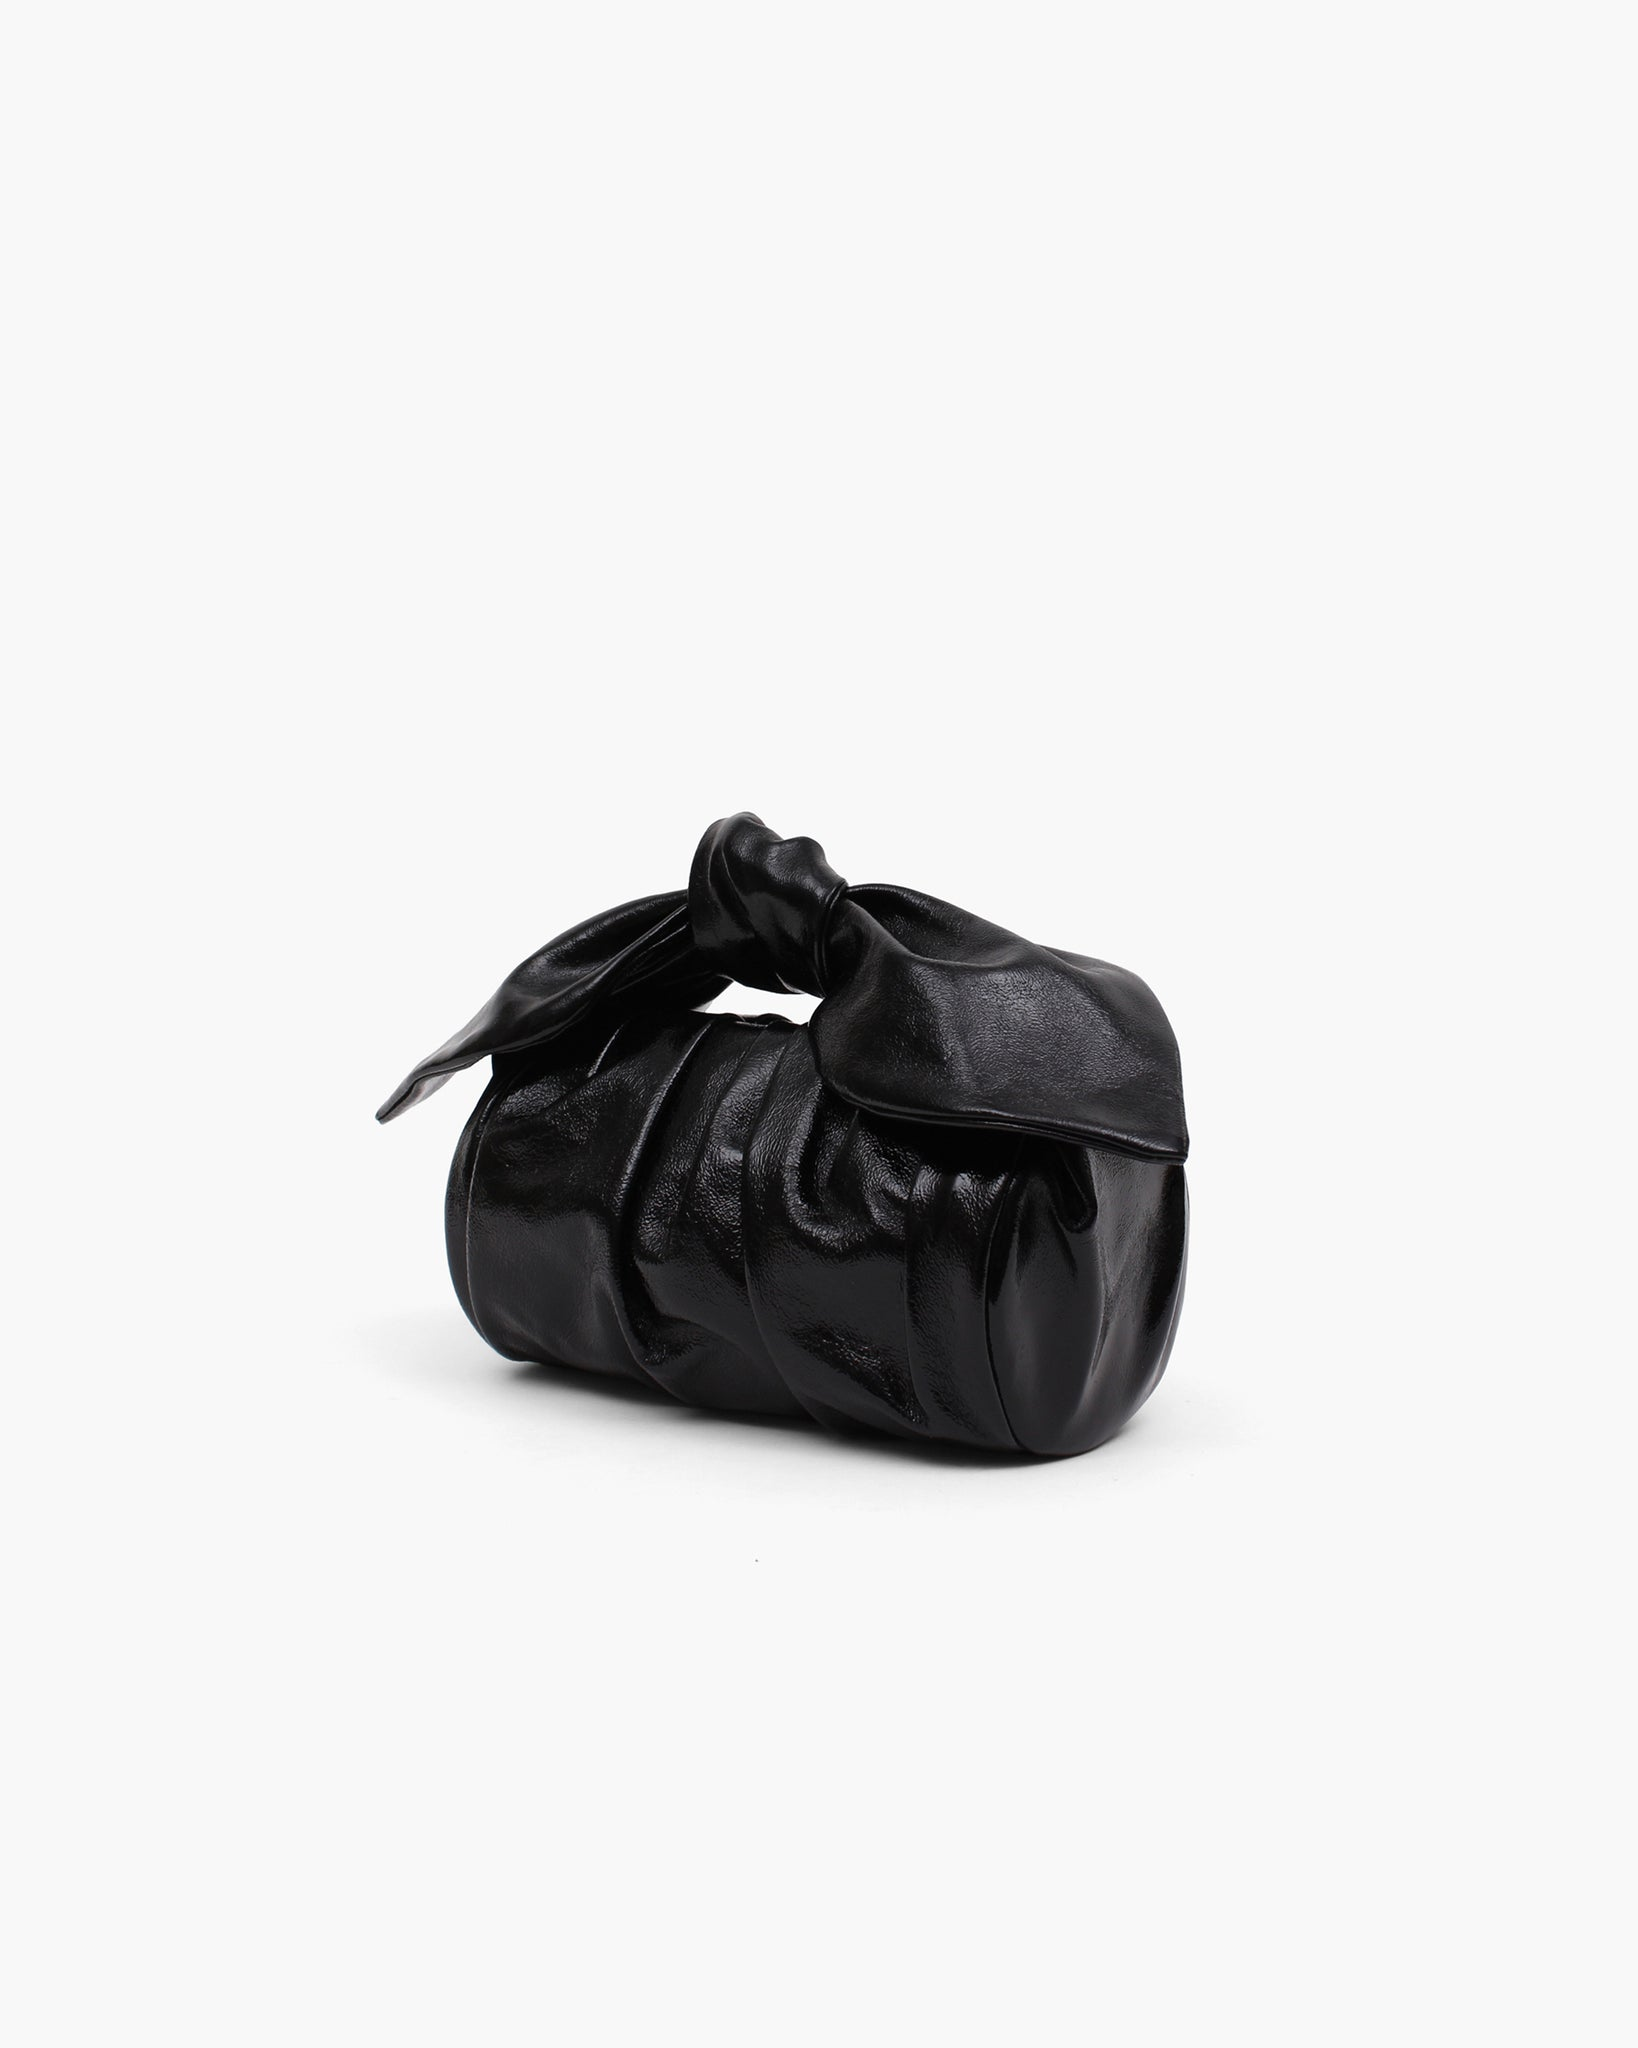 Nane Bag Leather Patent Crinkle Black